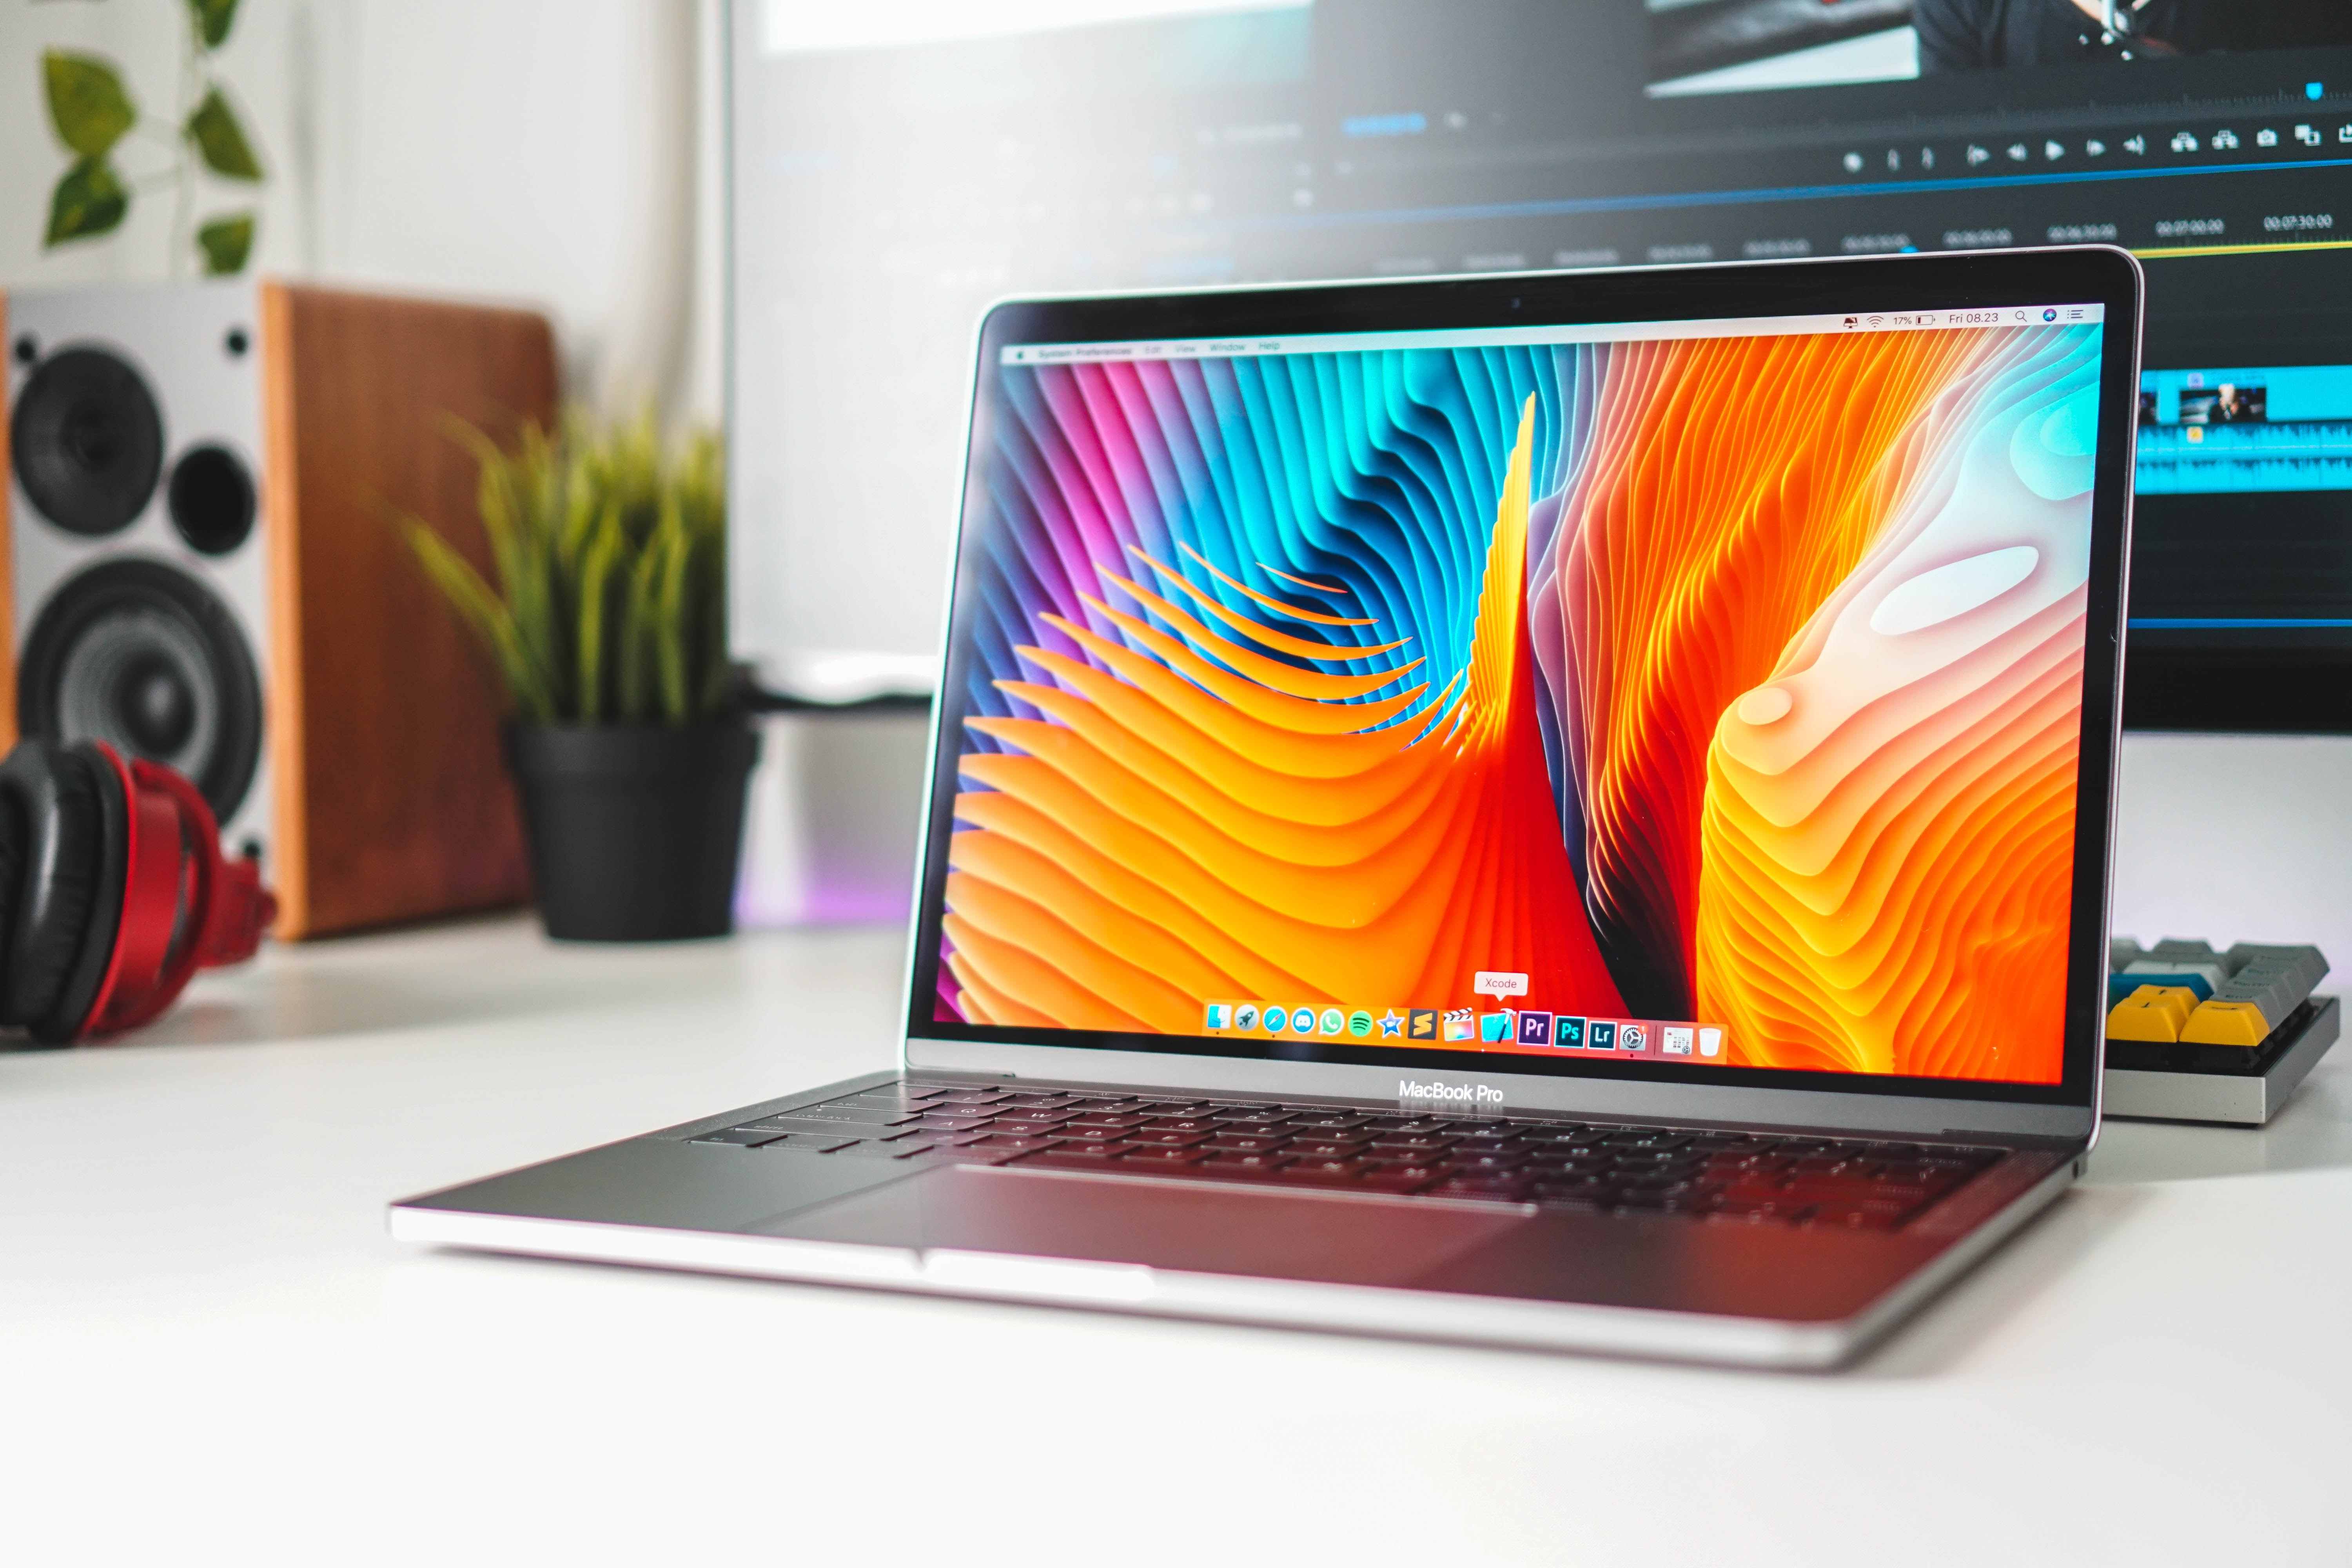 What's the first thing you need to configure on new Mac